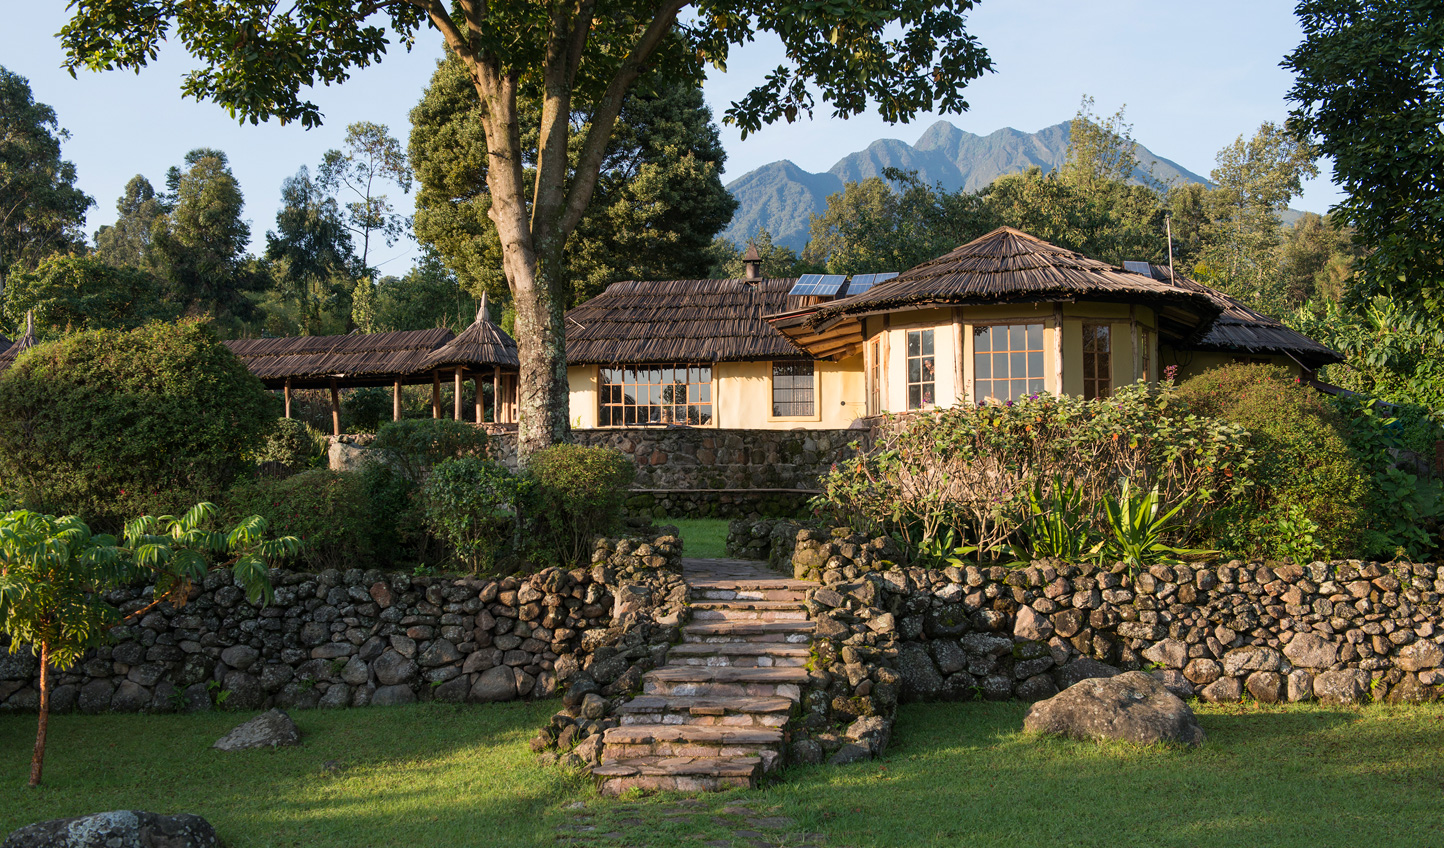 Feel at home with the gorillas at Mount Gahinga Lodge